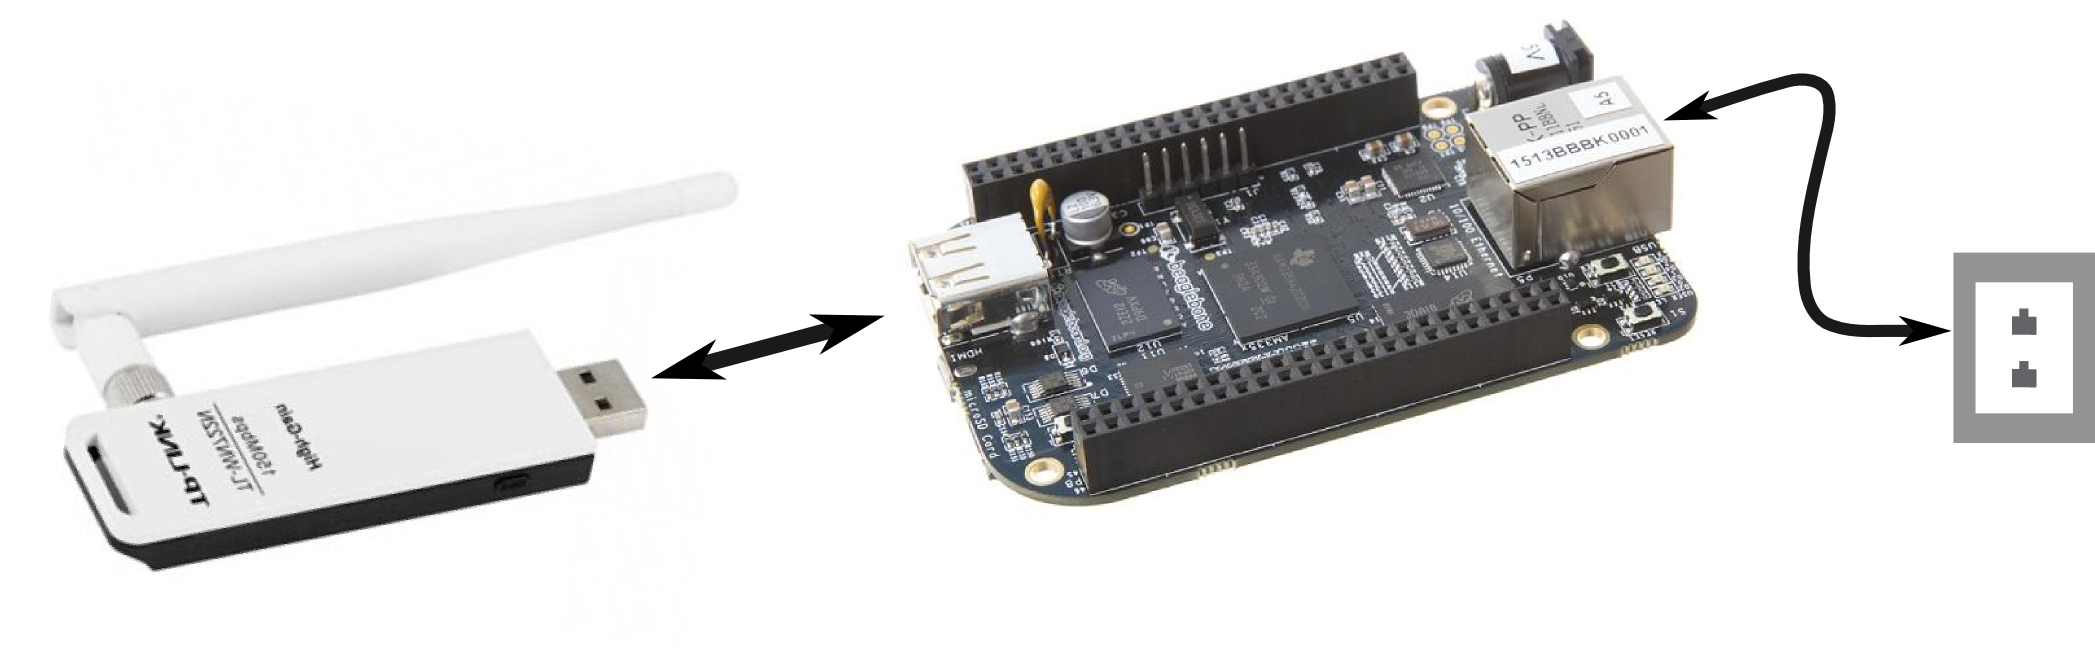 BeagleBone Black Being connected to an antenna and ethernet jack